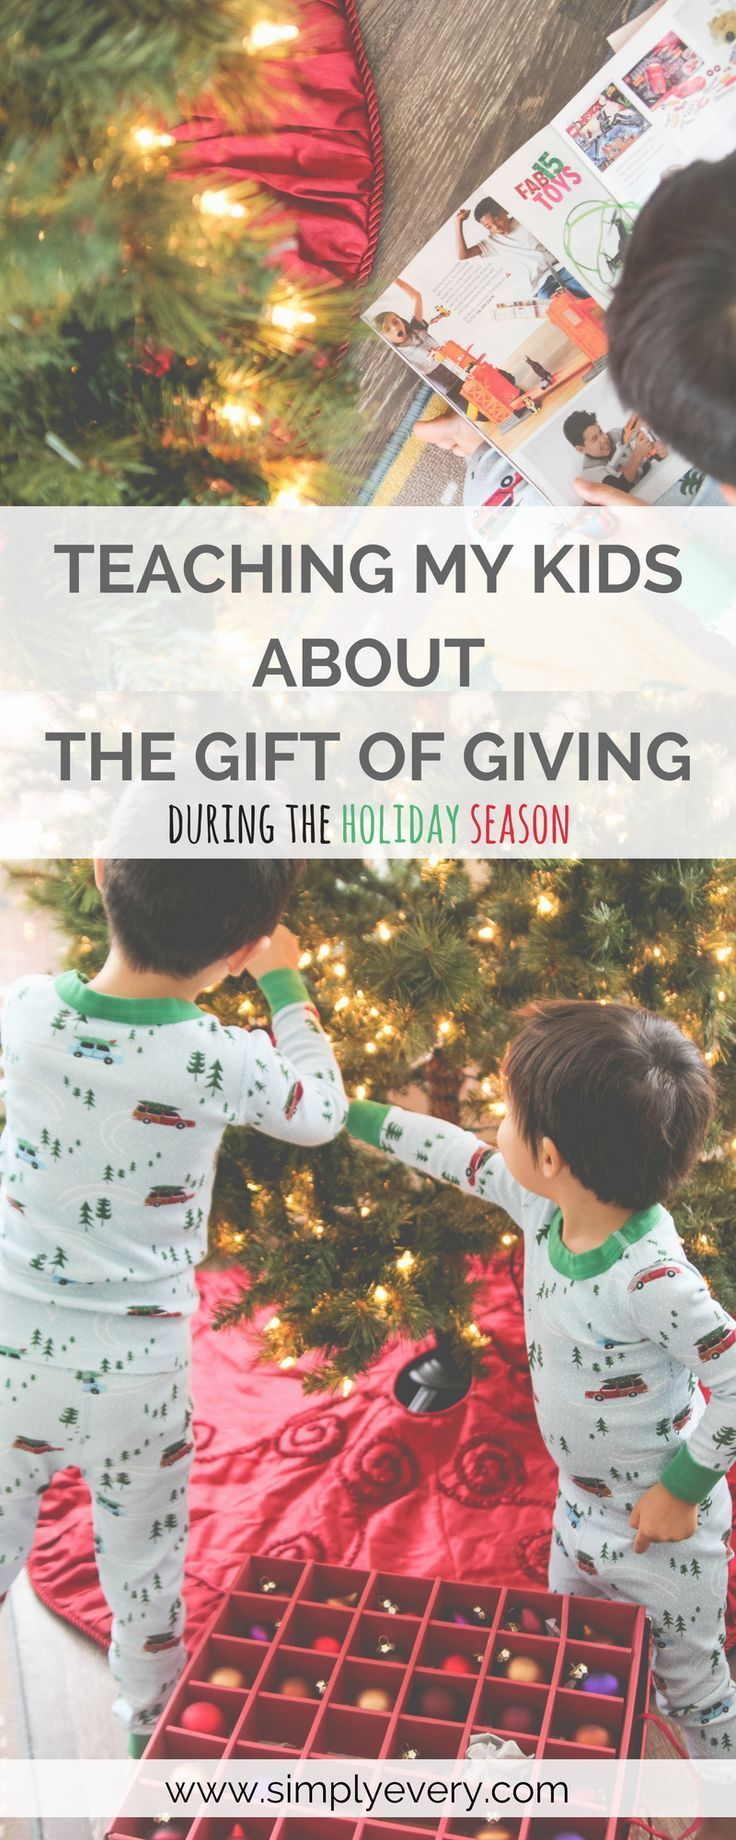 Teaching My Kids About the Gift of Giving | Family | Pinterest | Gift